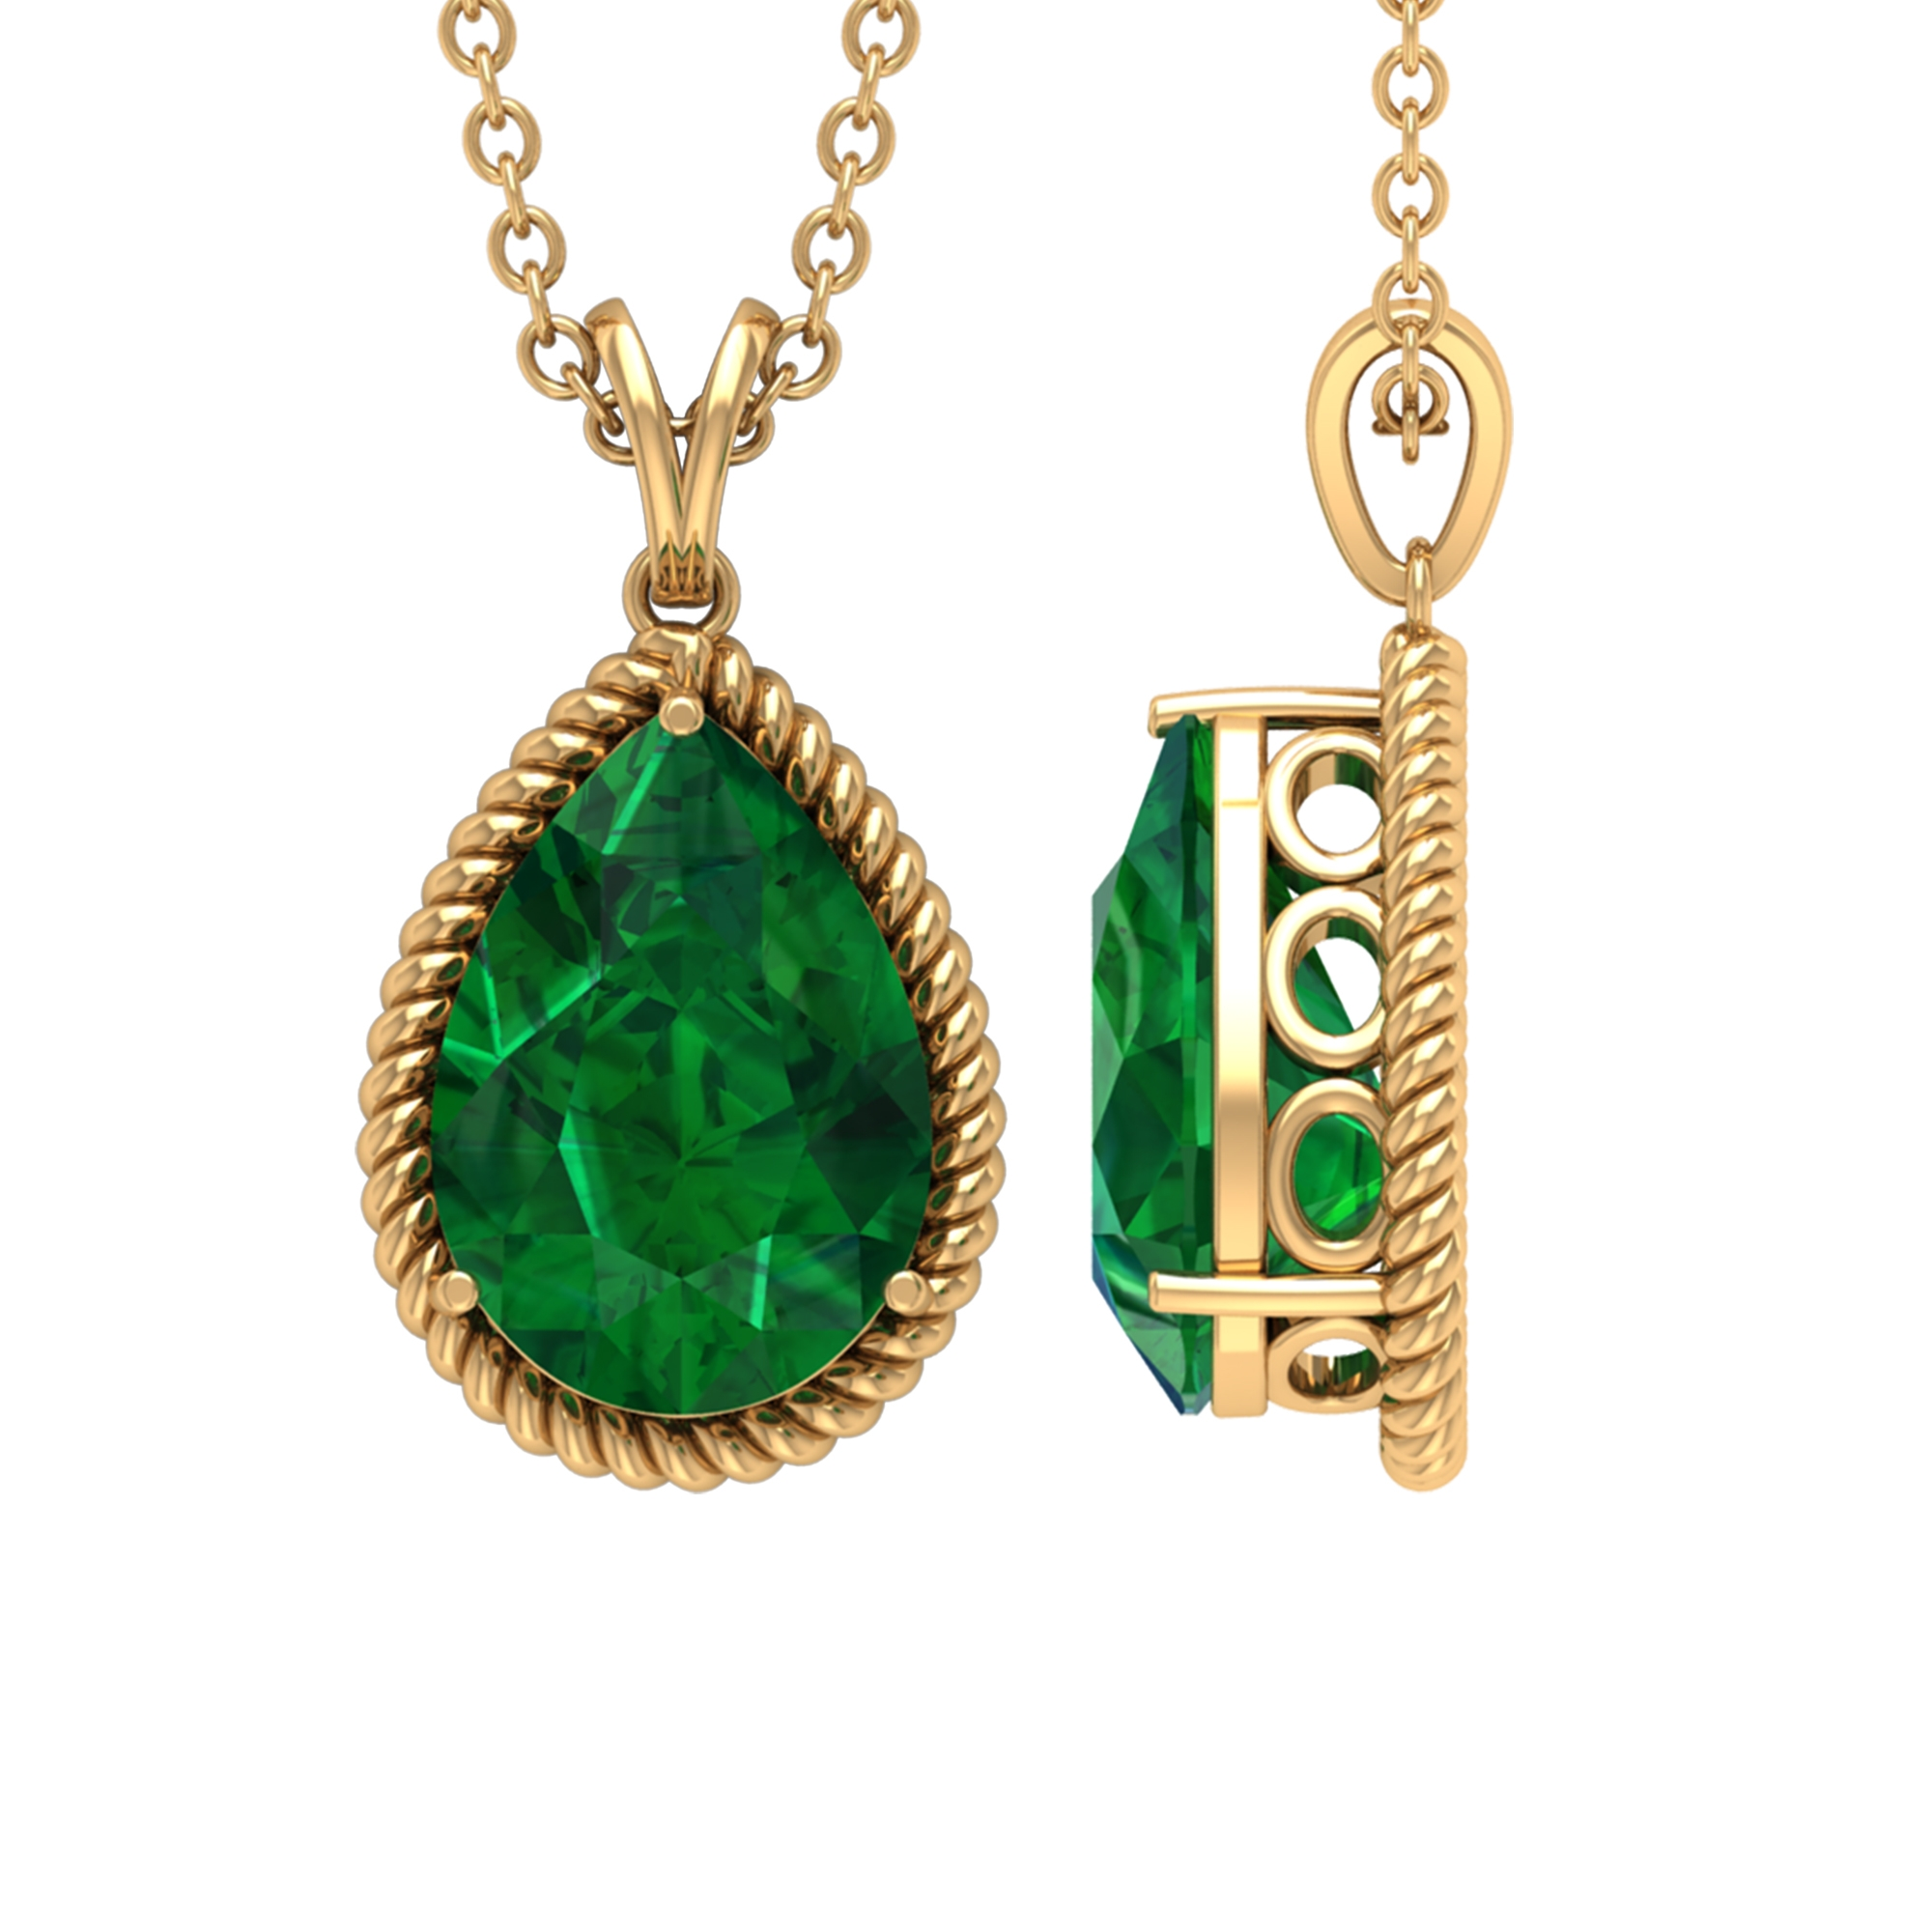 7X10 MM 3 Prong Set Pear Cut Emerald Solitaire Statement Pendant with Rope Frame and Rabbit Ear Bail